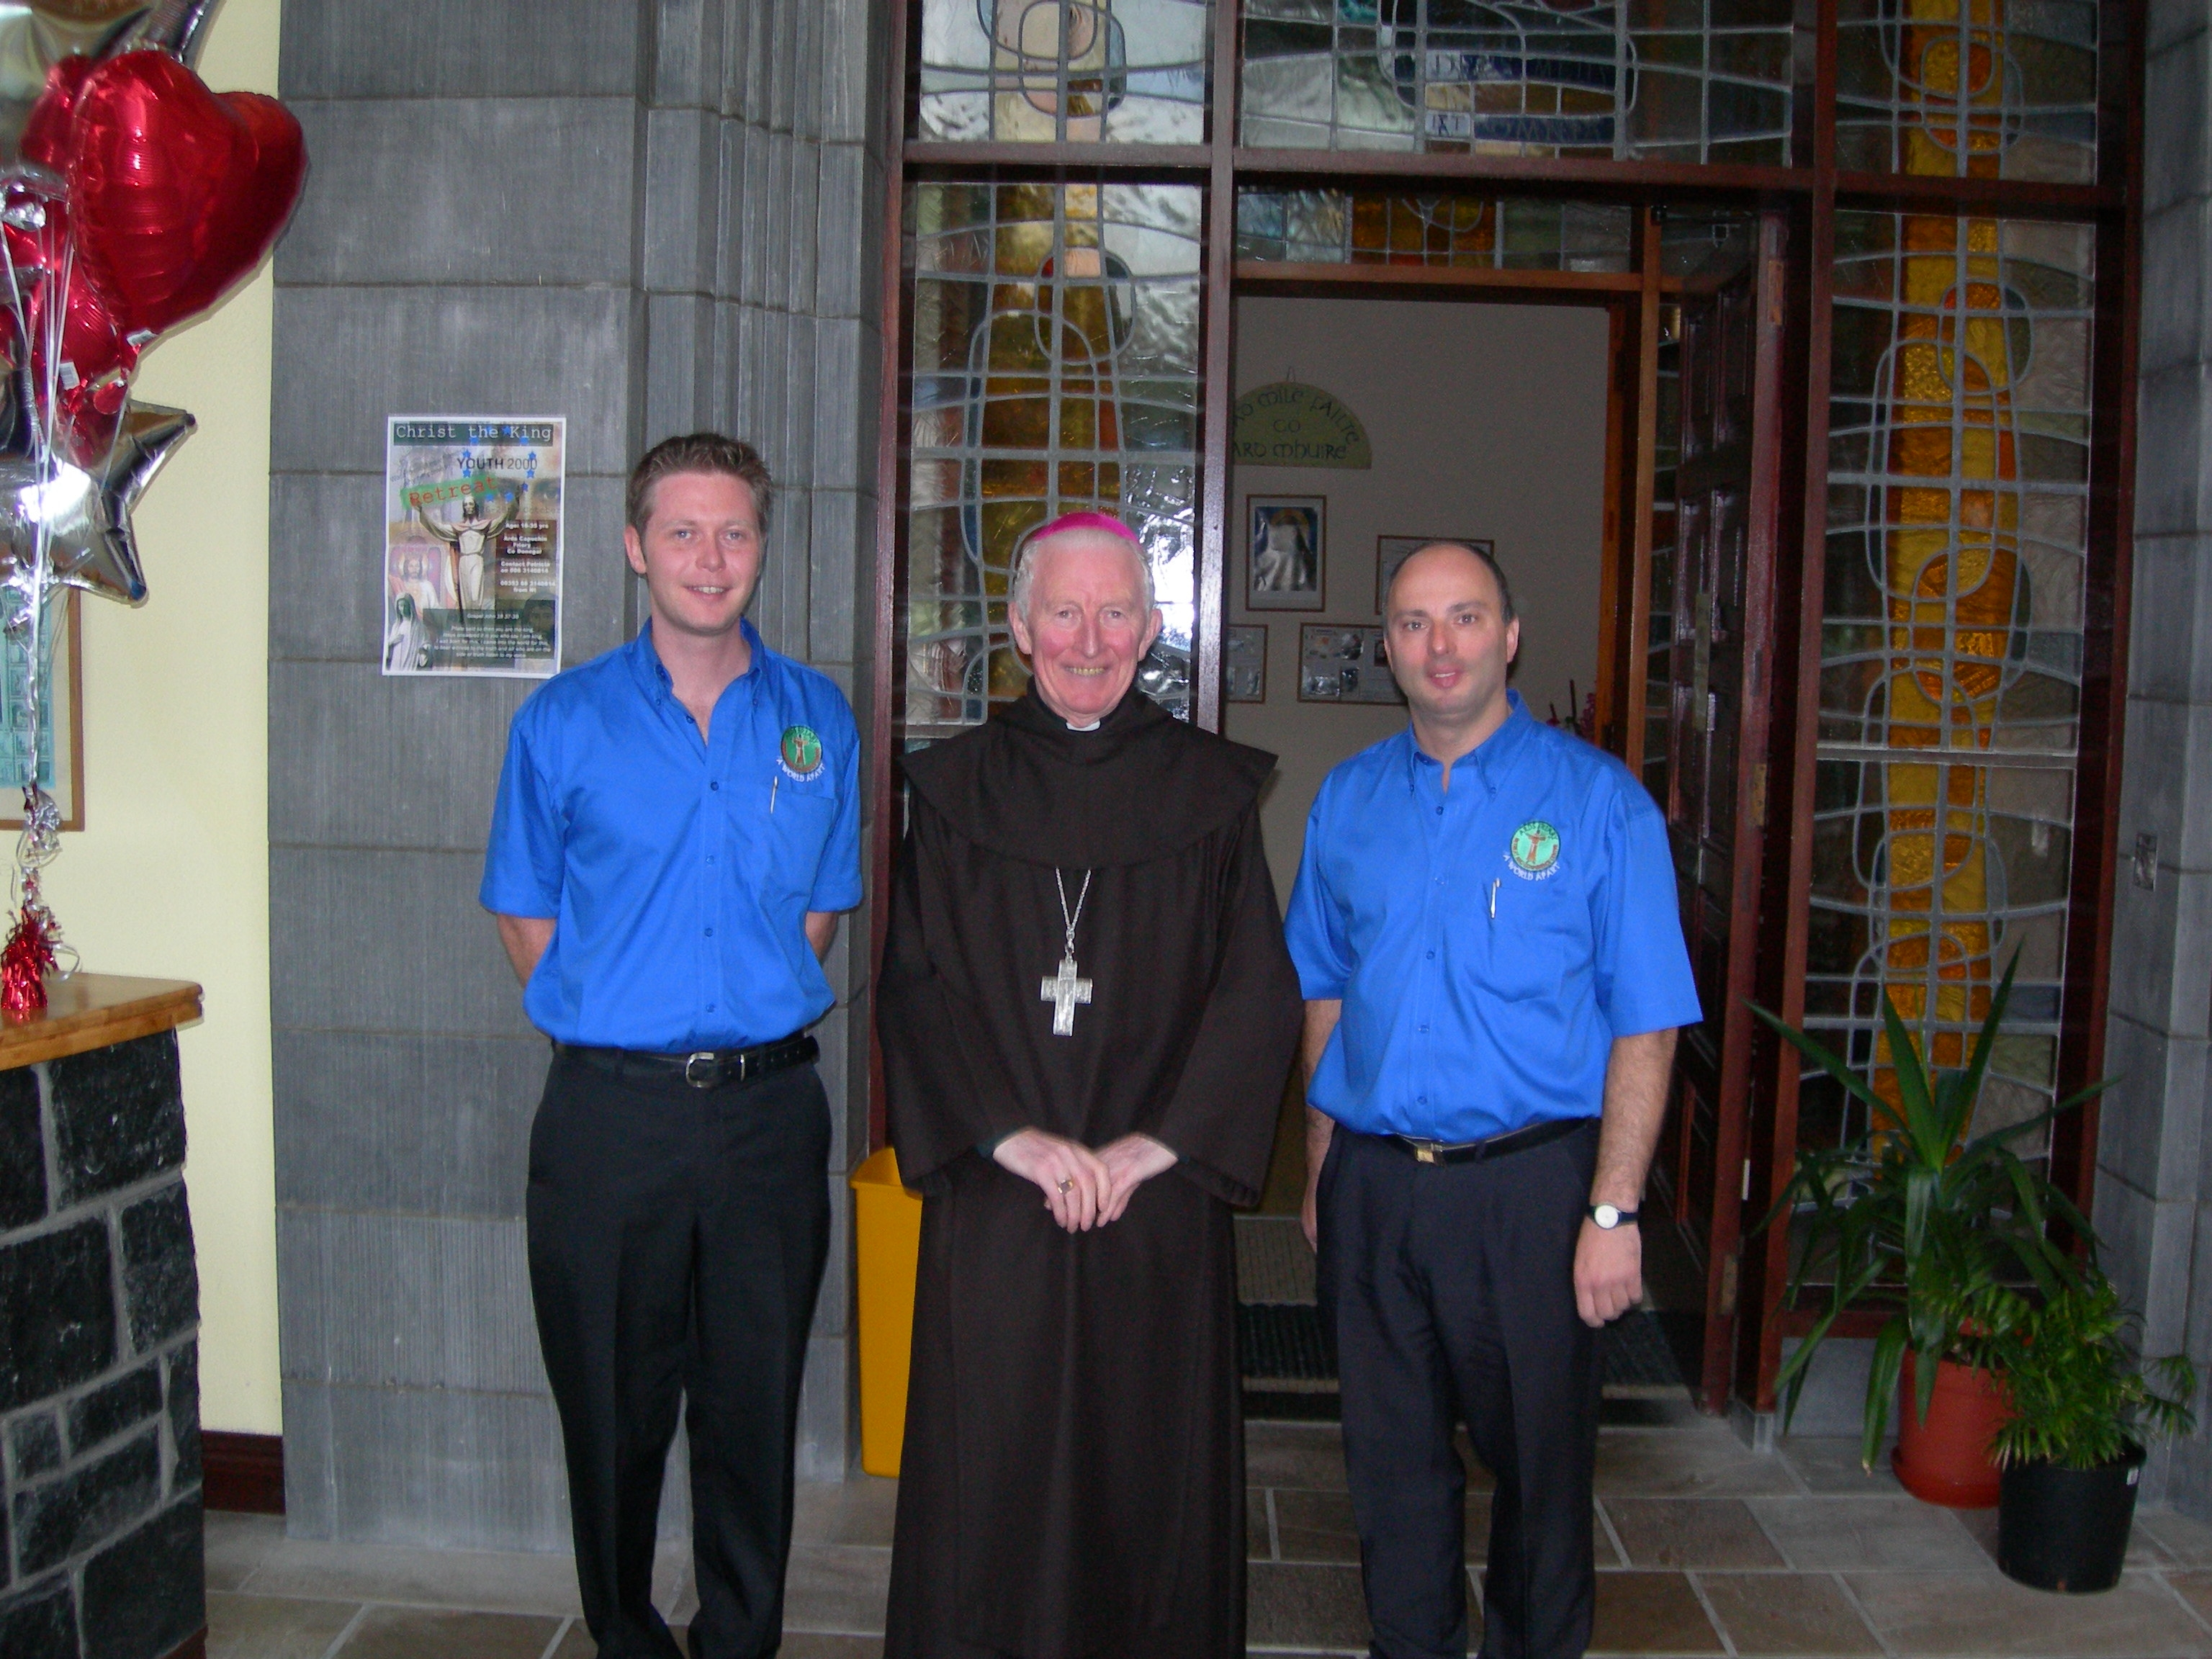 John Paul Lyttle (far left) with Bishop Philip Boyce and Benito Colangelo